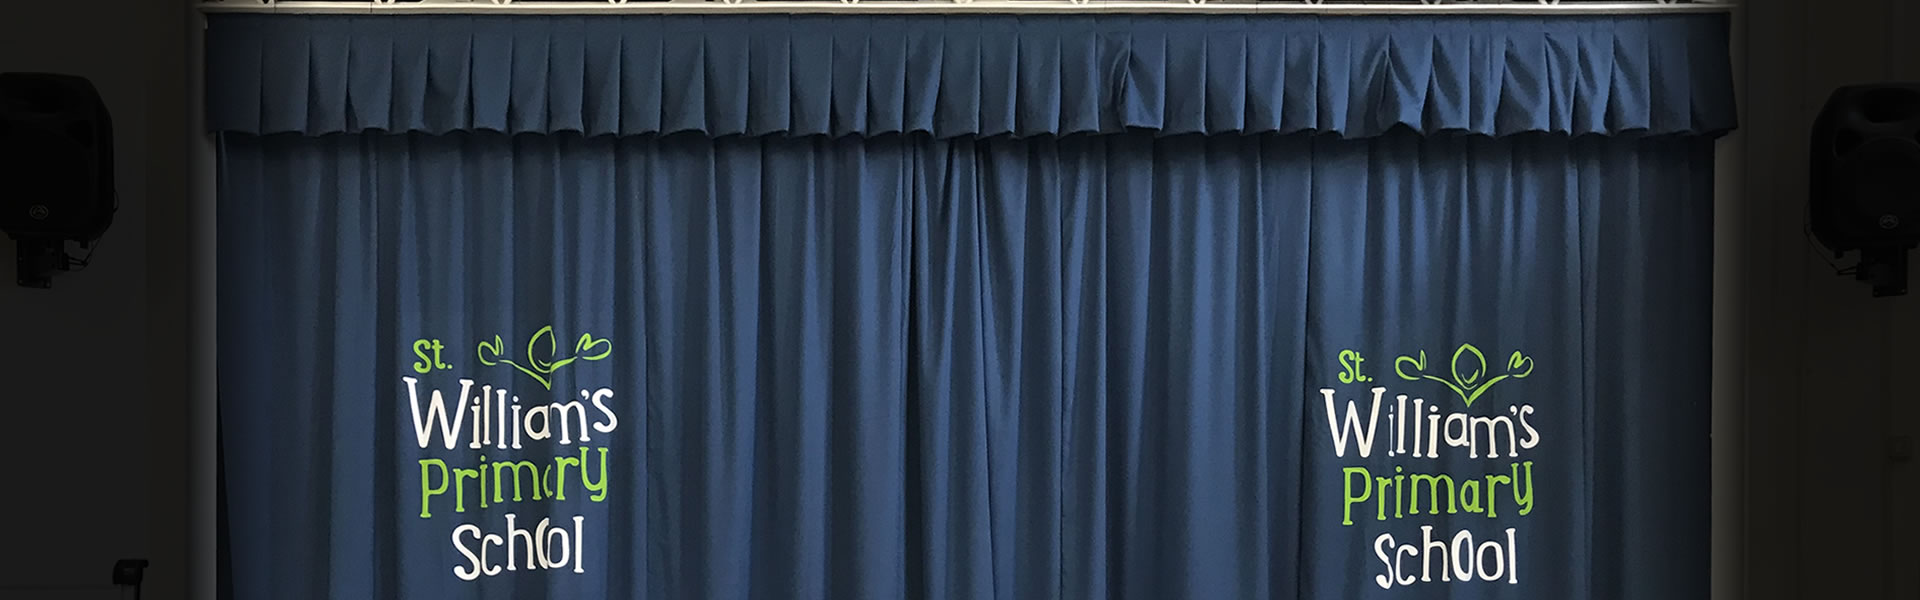 School Logo Curtains for School Halls & Stage Curtains